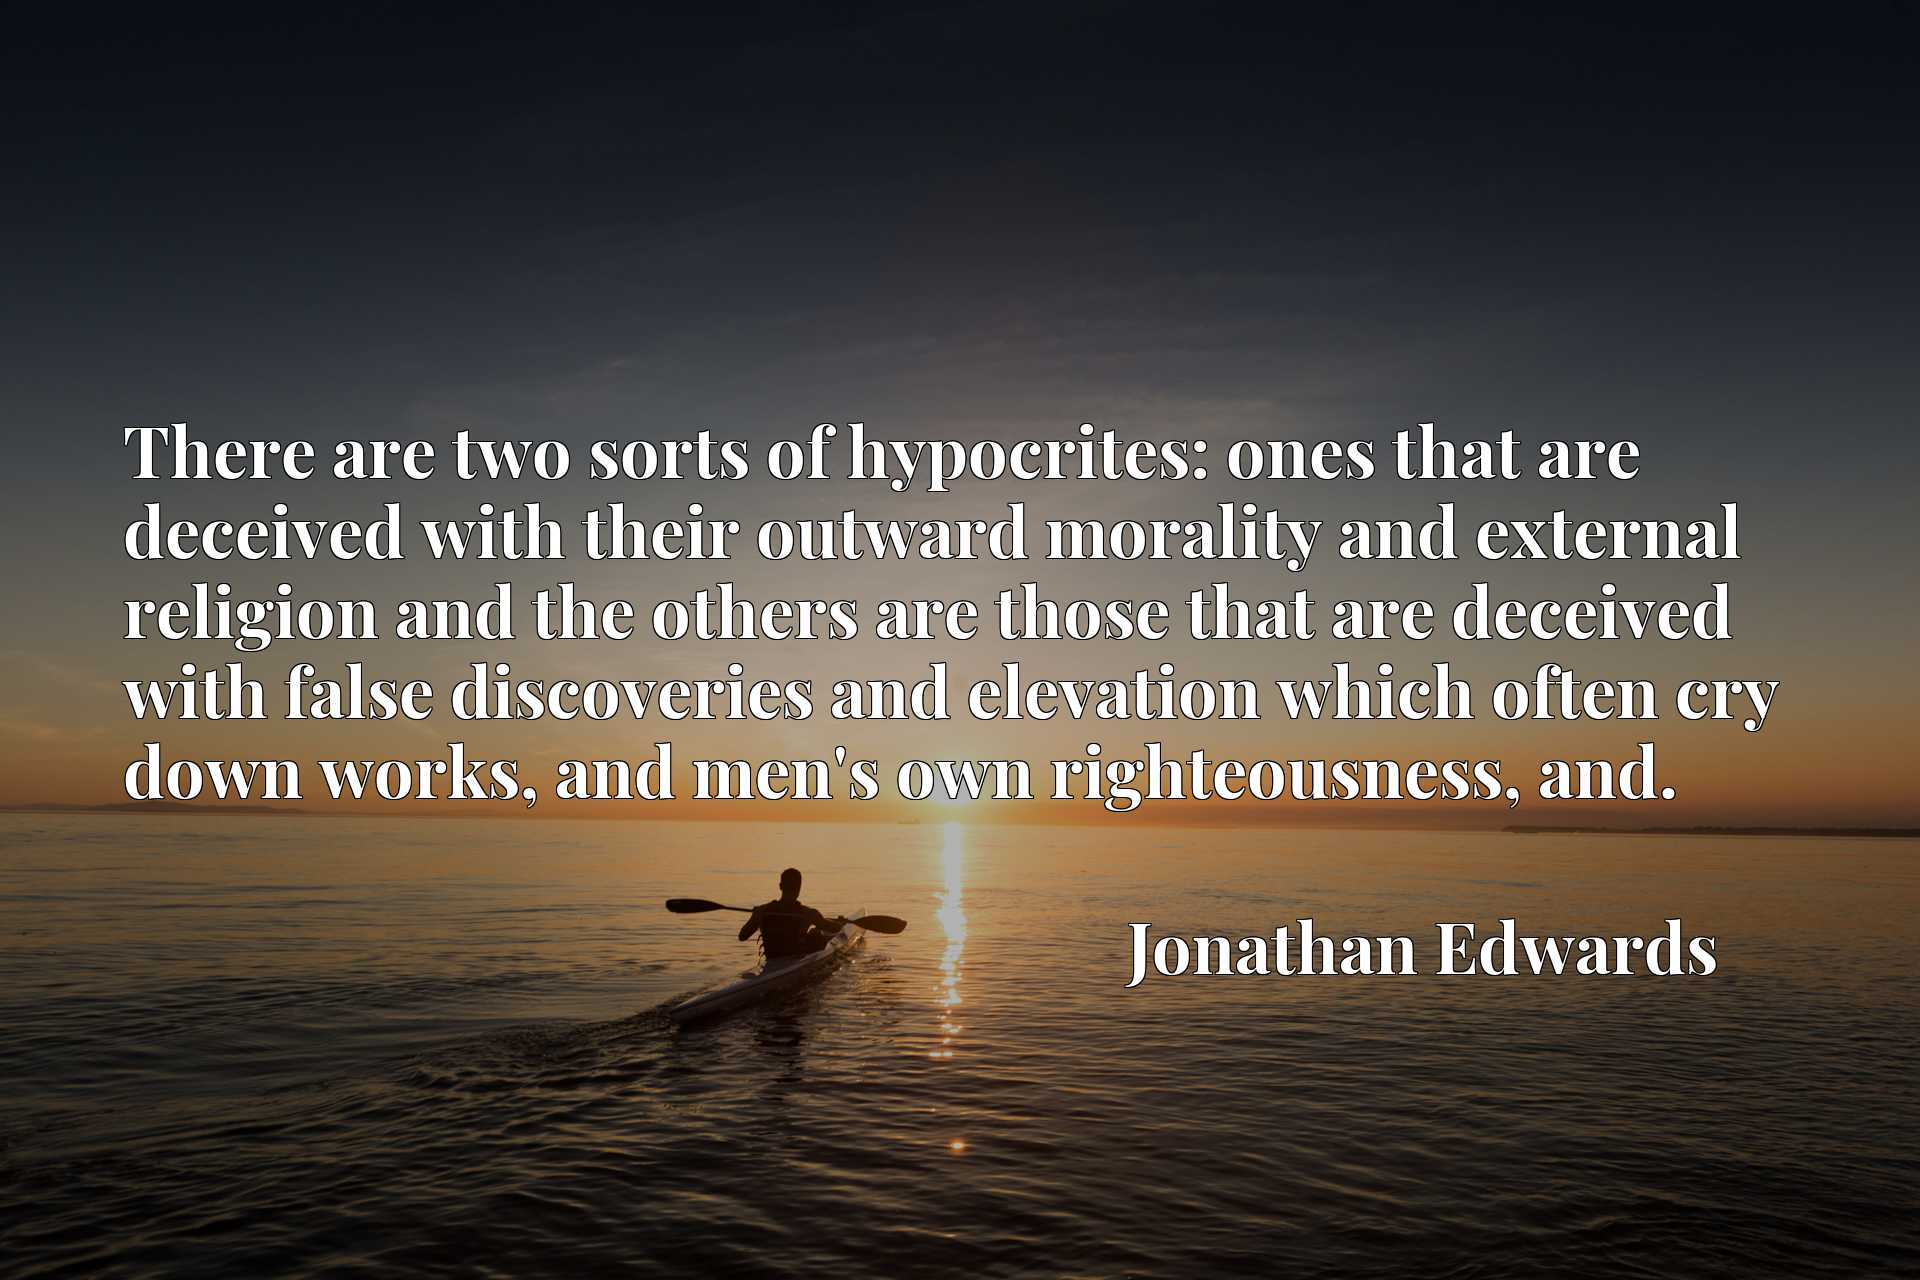 There are two sorts of hypocrites: ones that are deceived with their outward morality and external religion and the others are those that are deceived with false discoveries and elevation which often cry down works, and men's own righteousness, and.